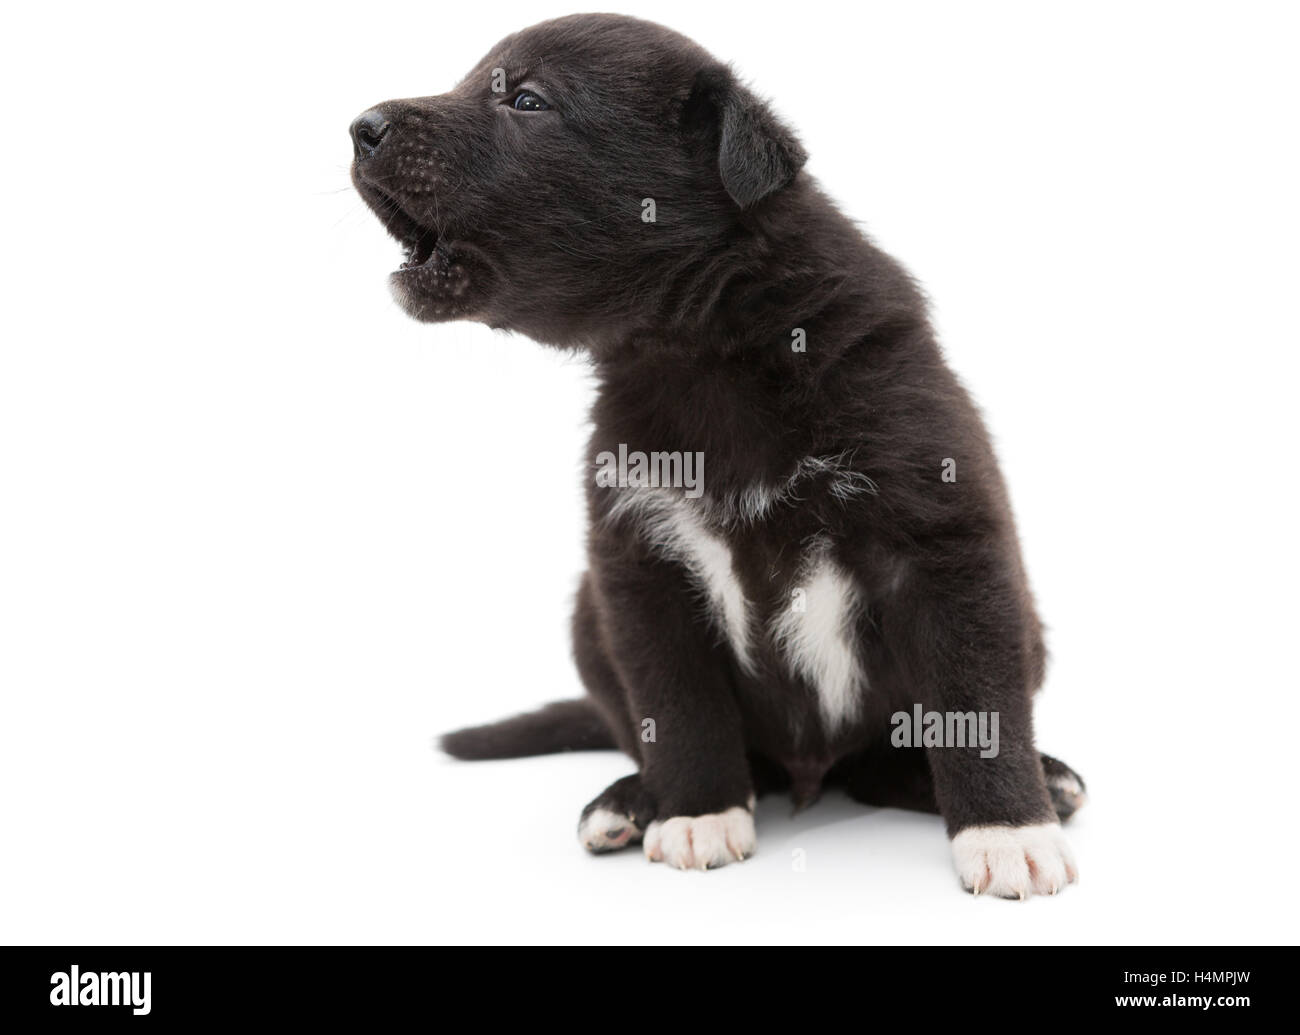 Small, black puppy cries and howls, isolated on white - Stock Image